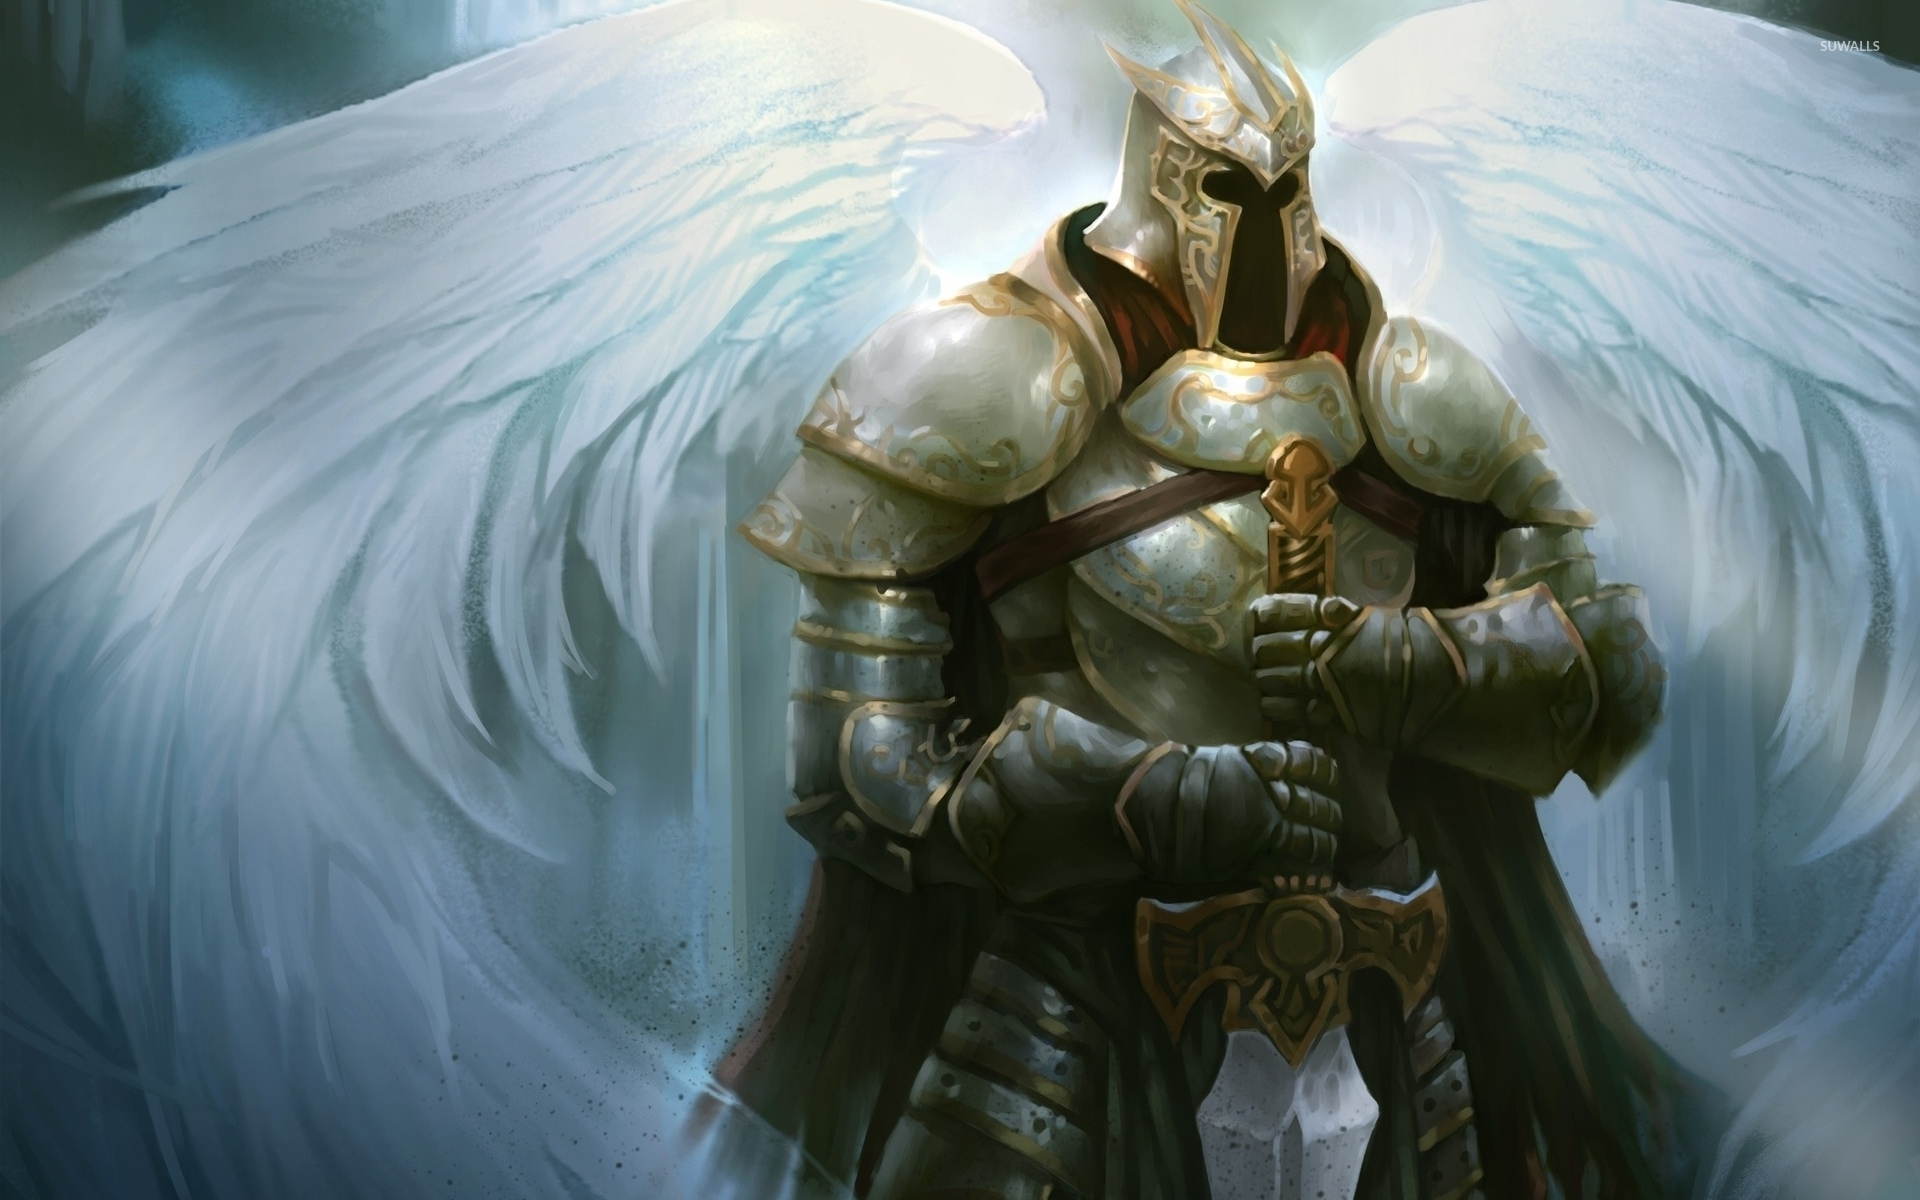 hd wallpaper angel warrior | 1920x1200 | 208 kB by Branch MacDonald